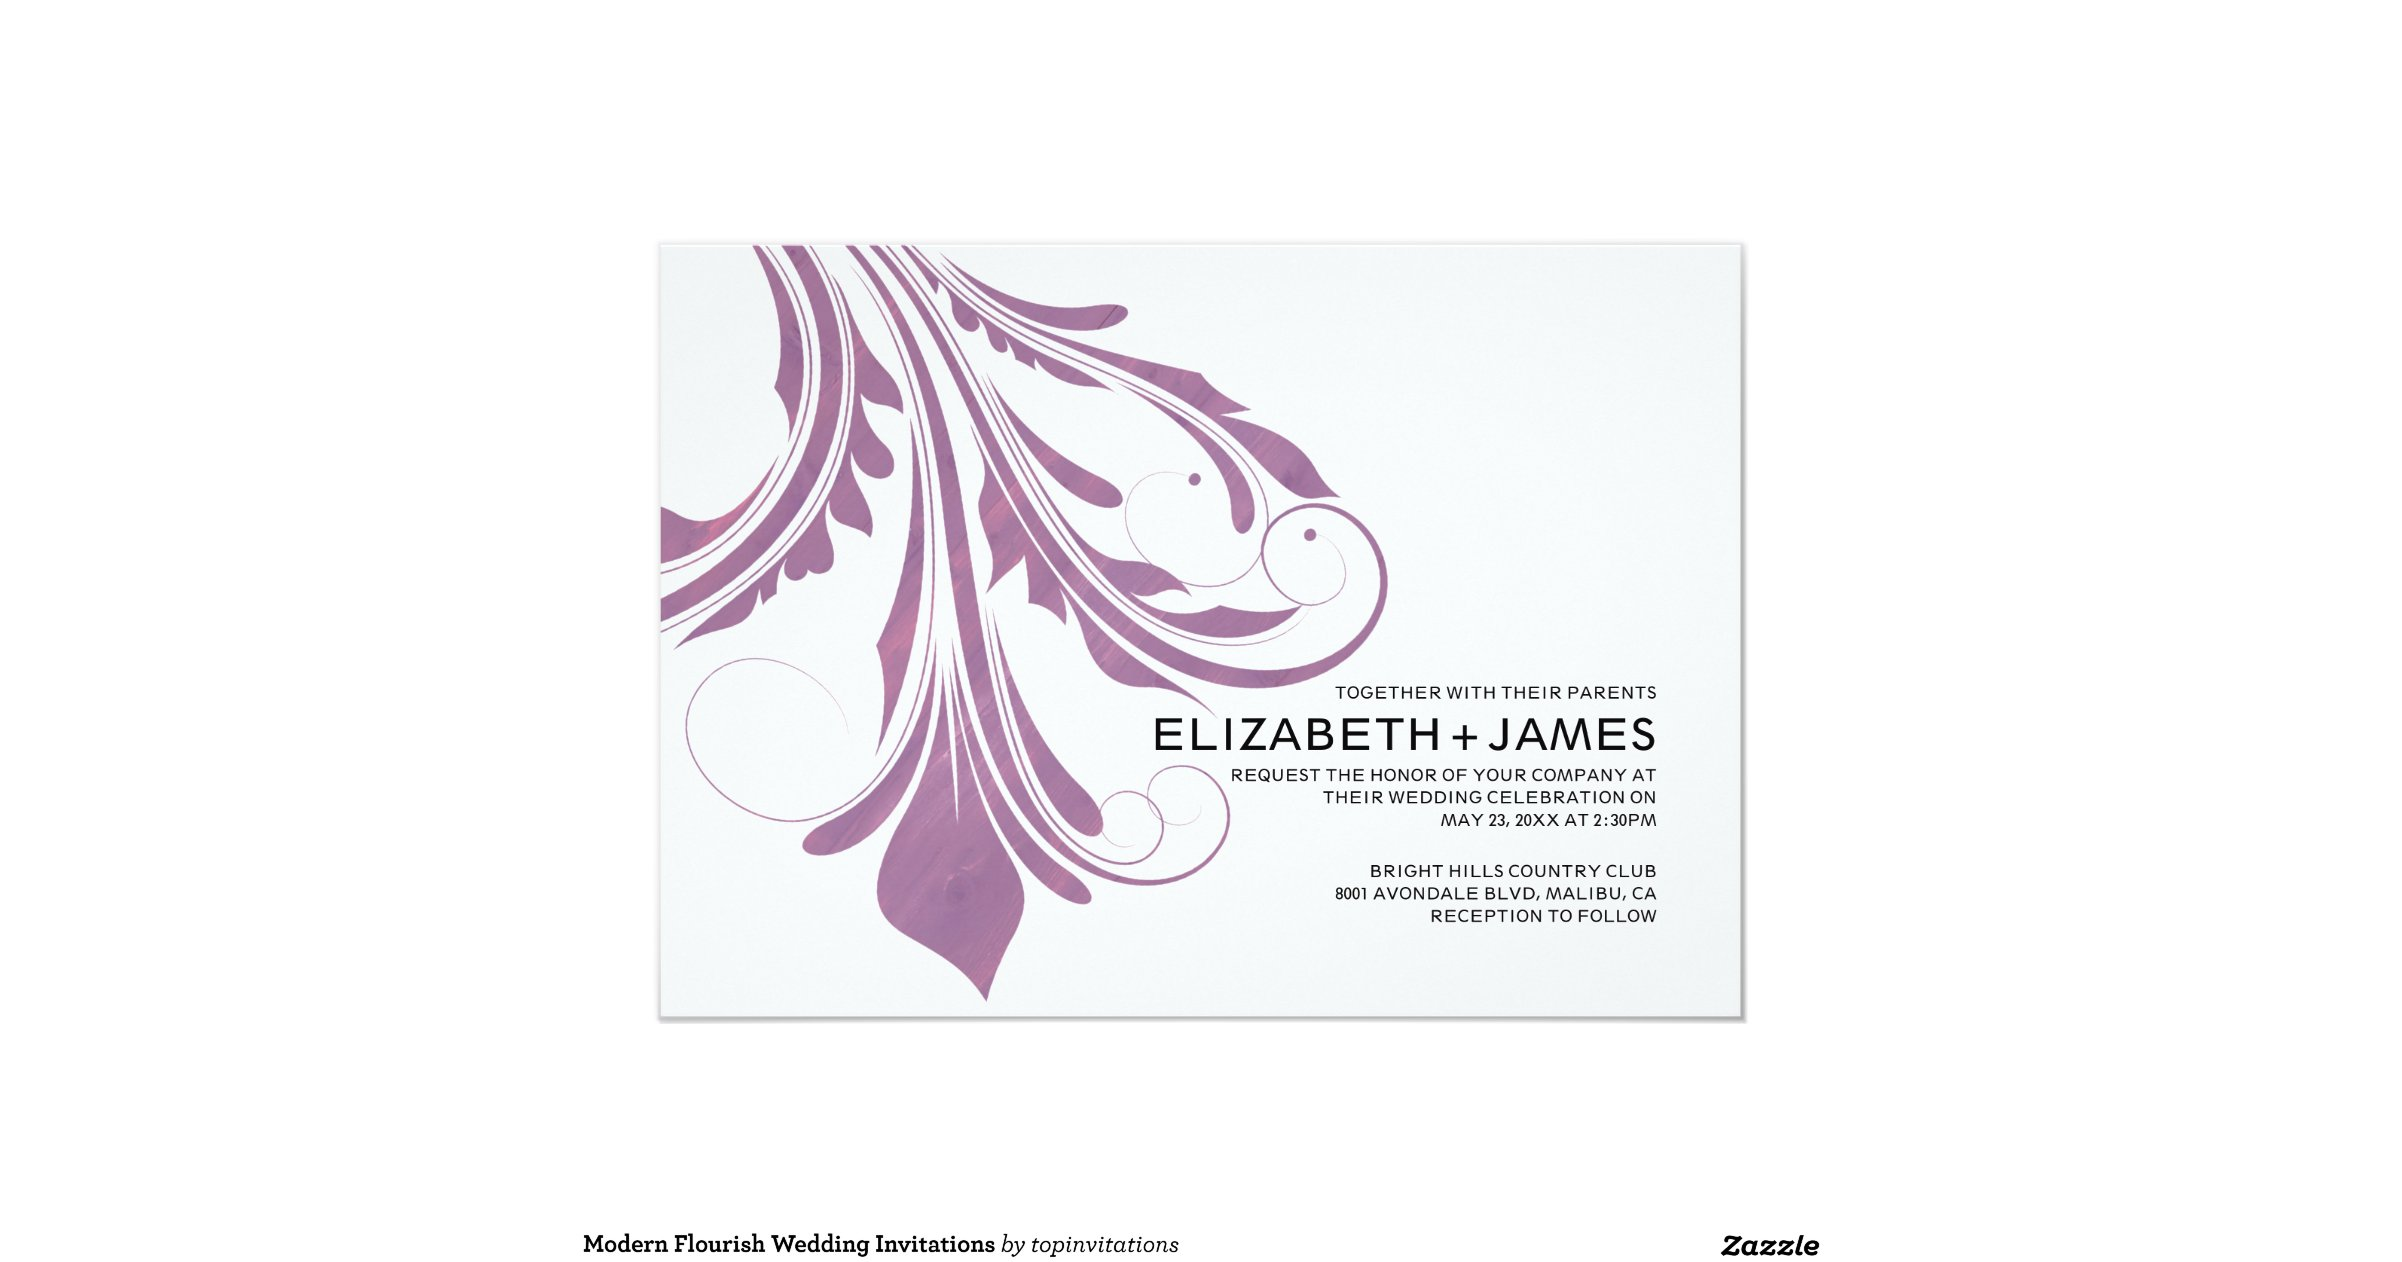 Flourish Wedding Invitations: Modern_flourish_wedding_invitations